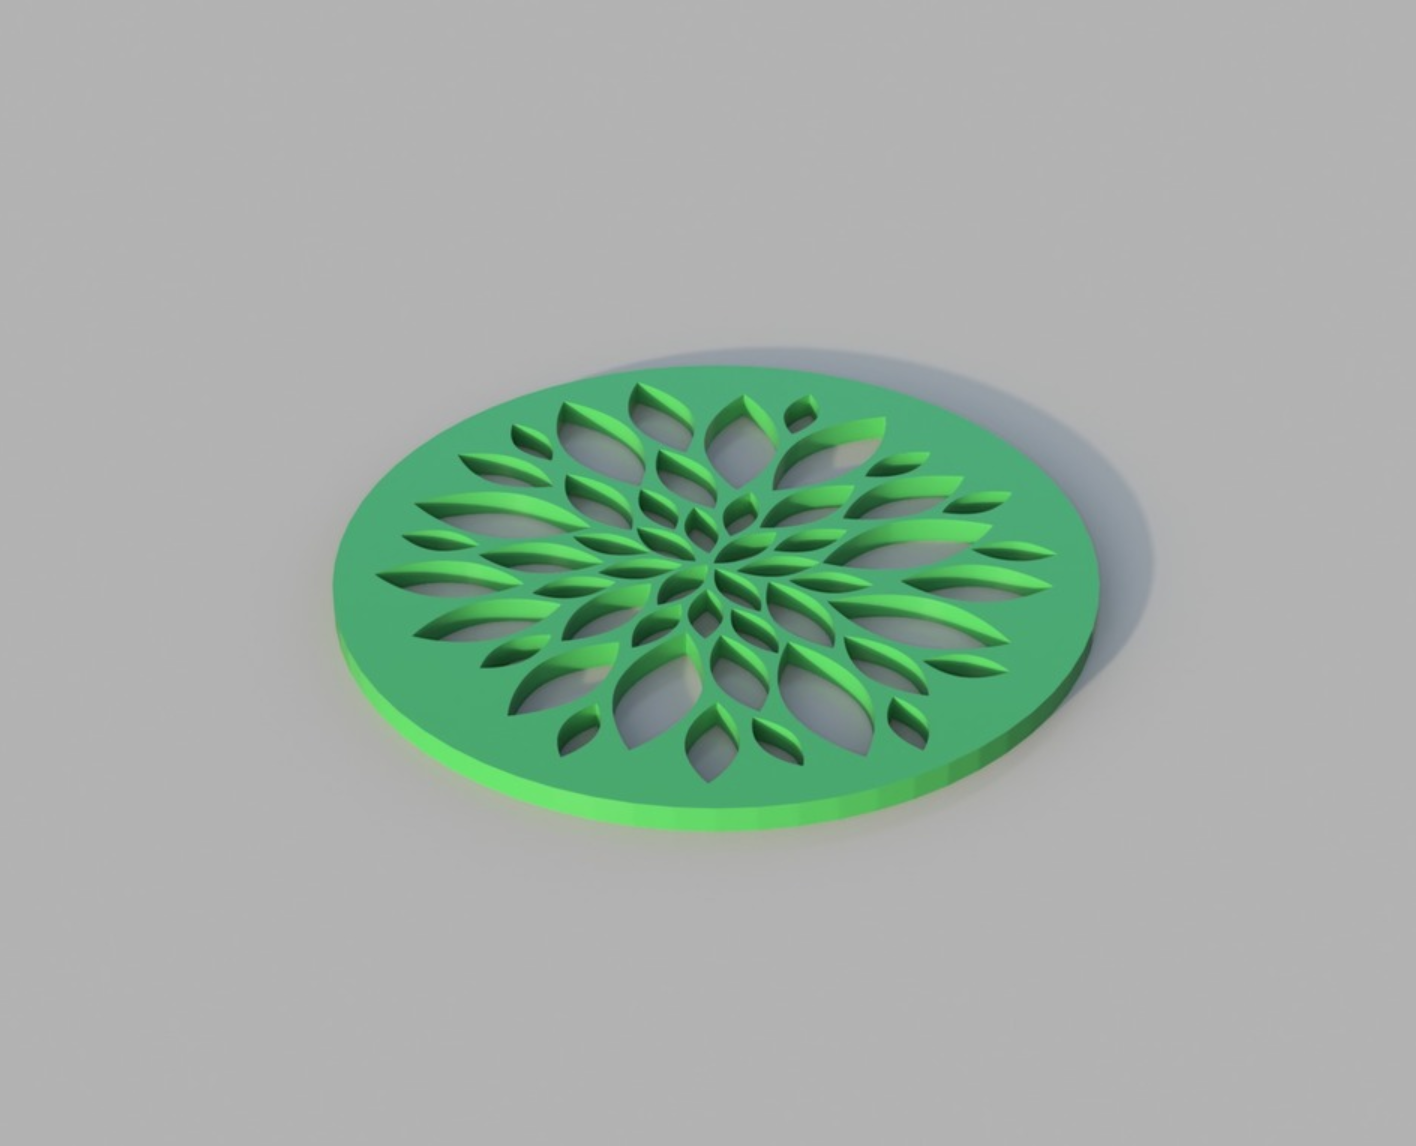 Capture d'écran 2017-12-20 à 11.07.08.png Download free STL file Floral Coaster • 3D printer model, 3DPrintingGurus